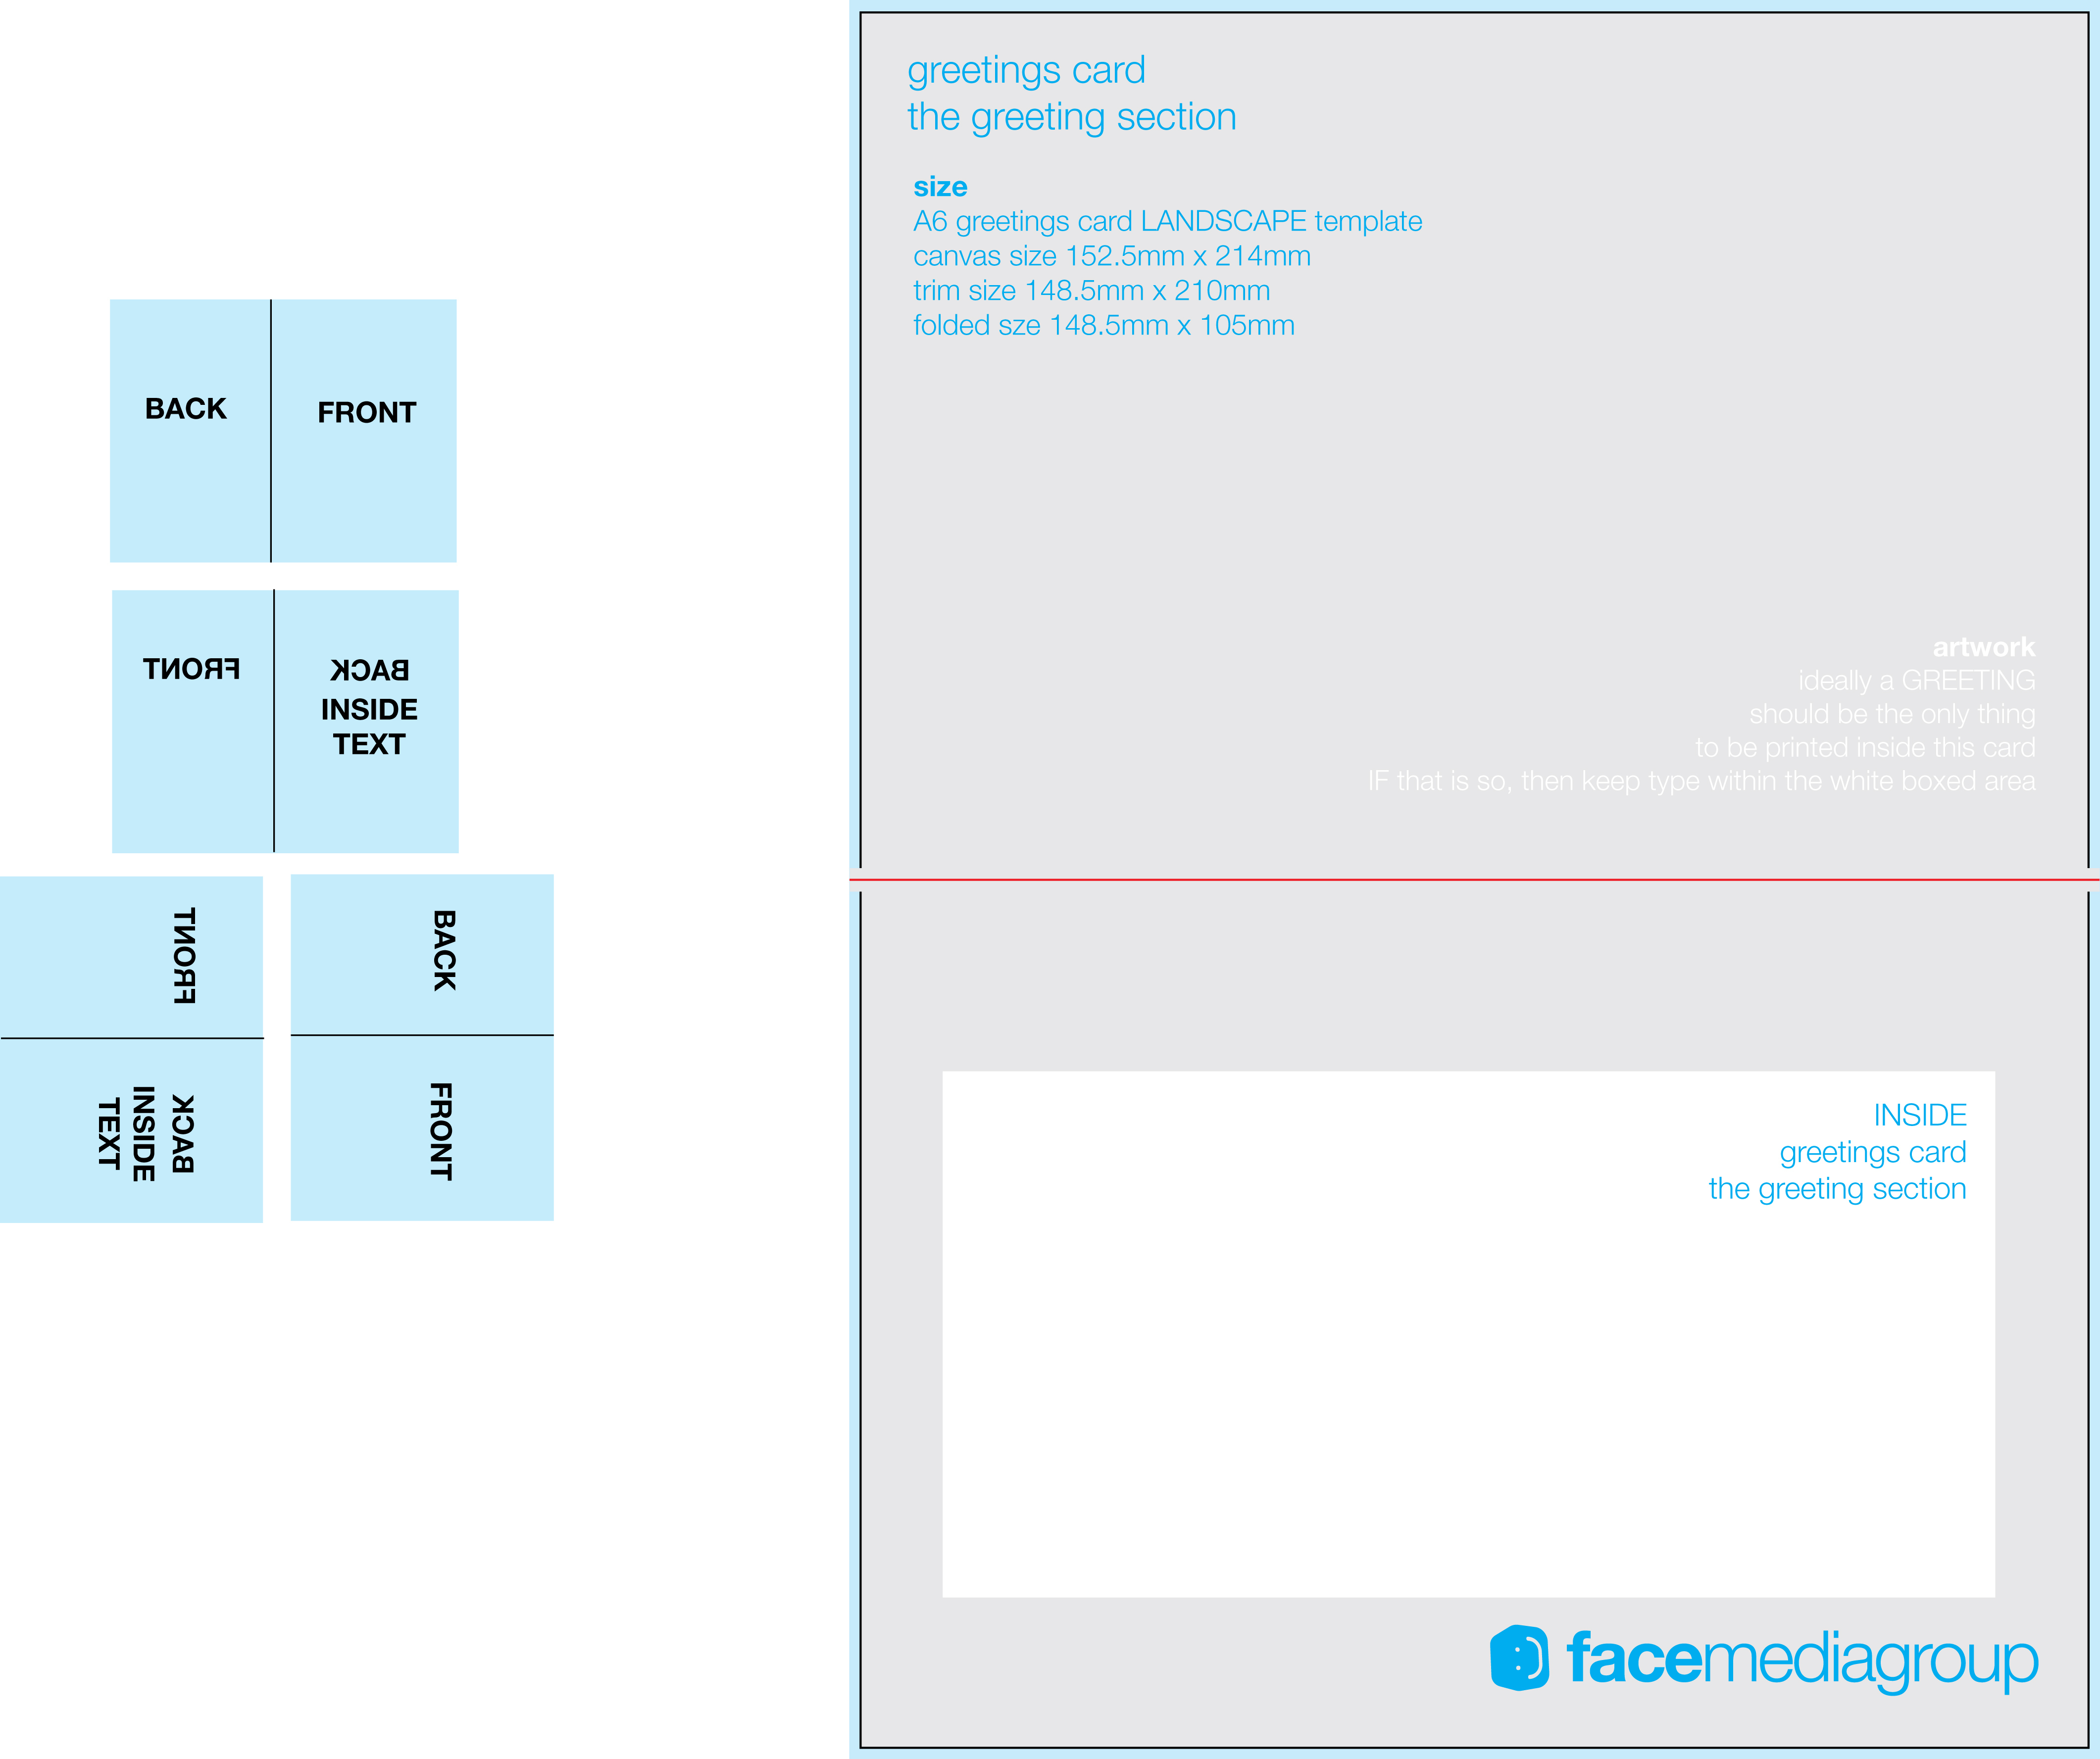 Free Blank Greetings Card Artwork Templates For Download | Face - Free Printable Blank Greeting Card Templates